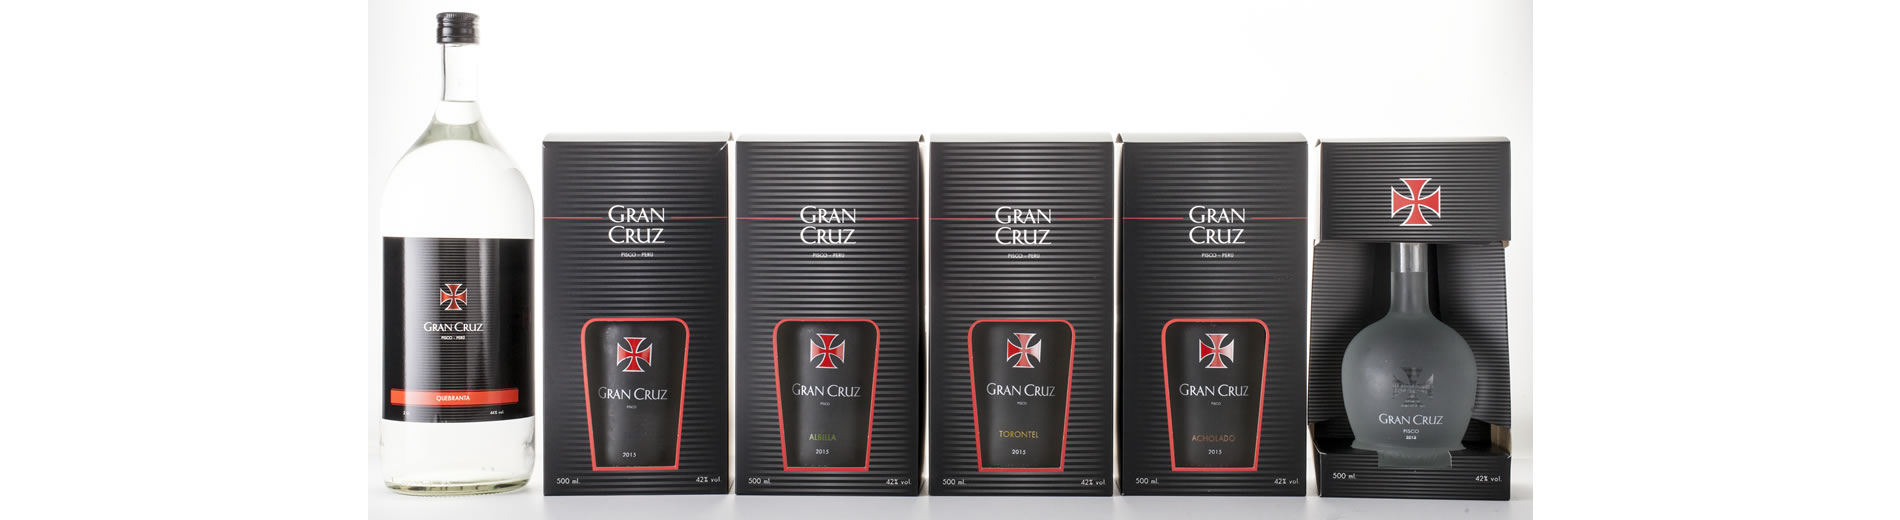 Pisco-Gran-Cruz-2017-Slider-3